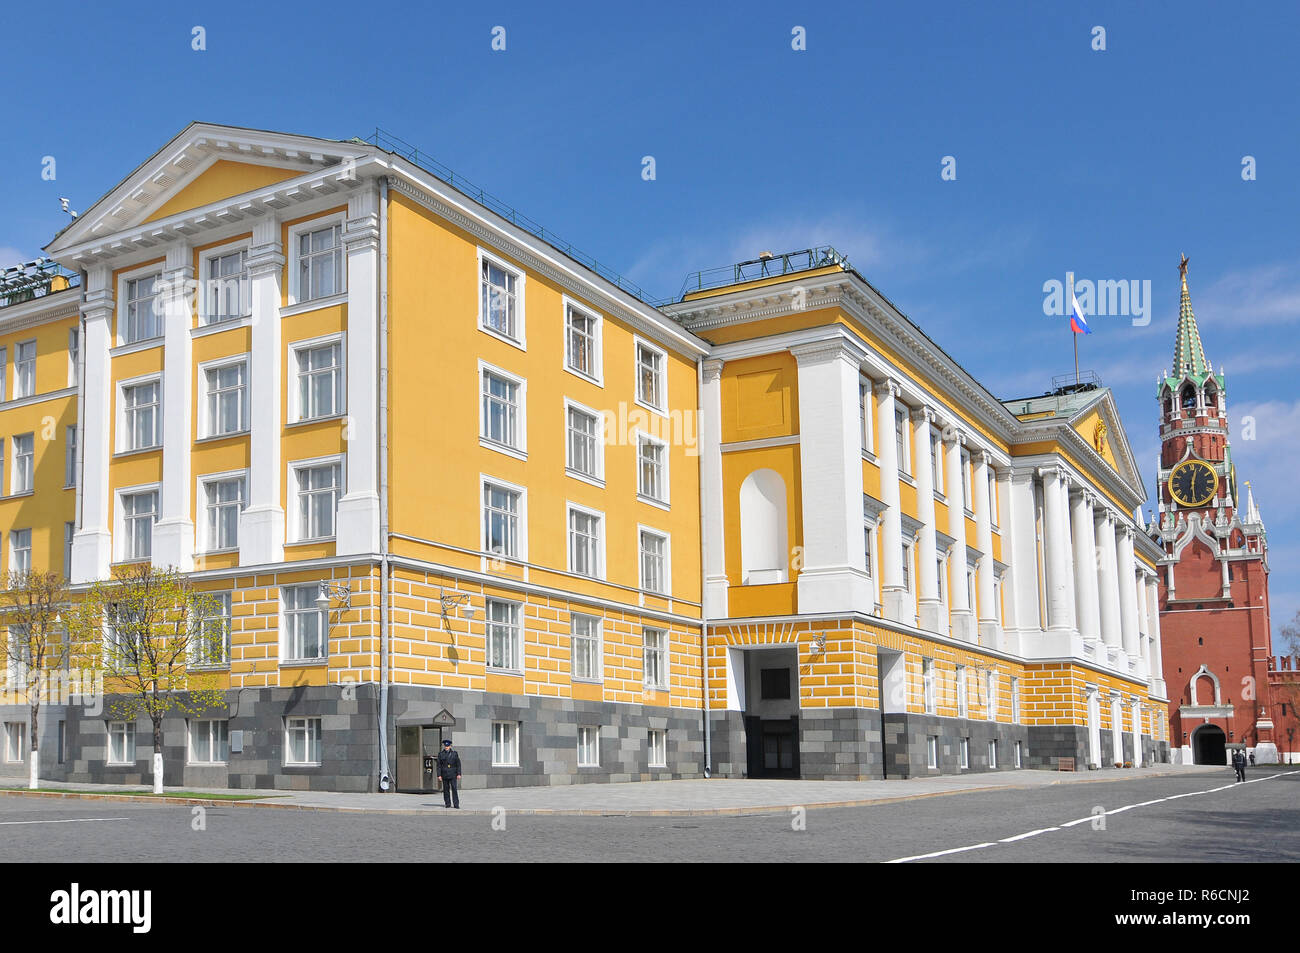 Russia, Moscow, The Kremlin Presidium, Also Known As Building 14, Building Within The Grounds Of The Moscow Kremlin In Russia - Stock Image